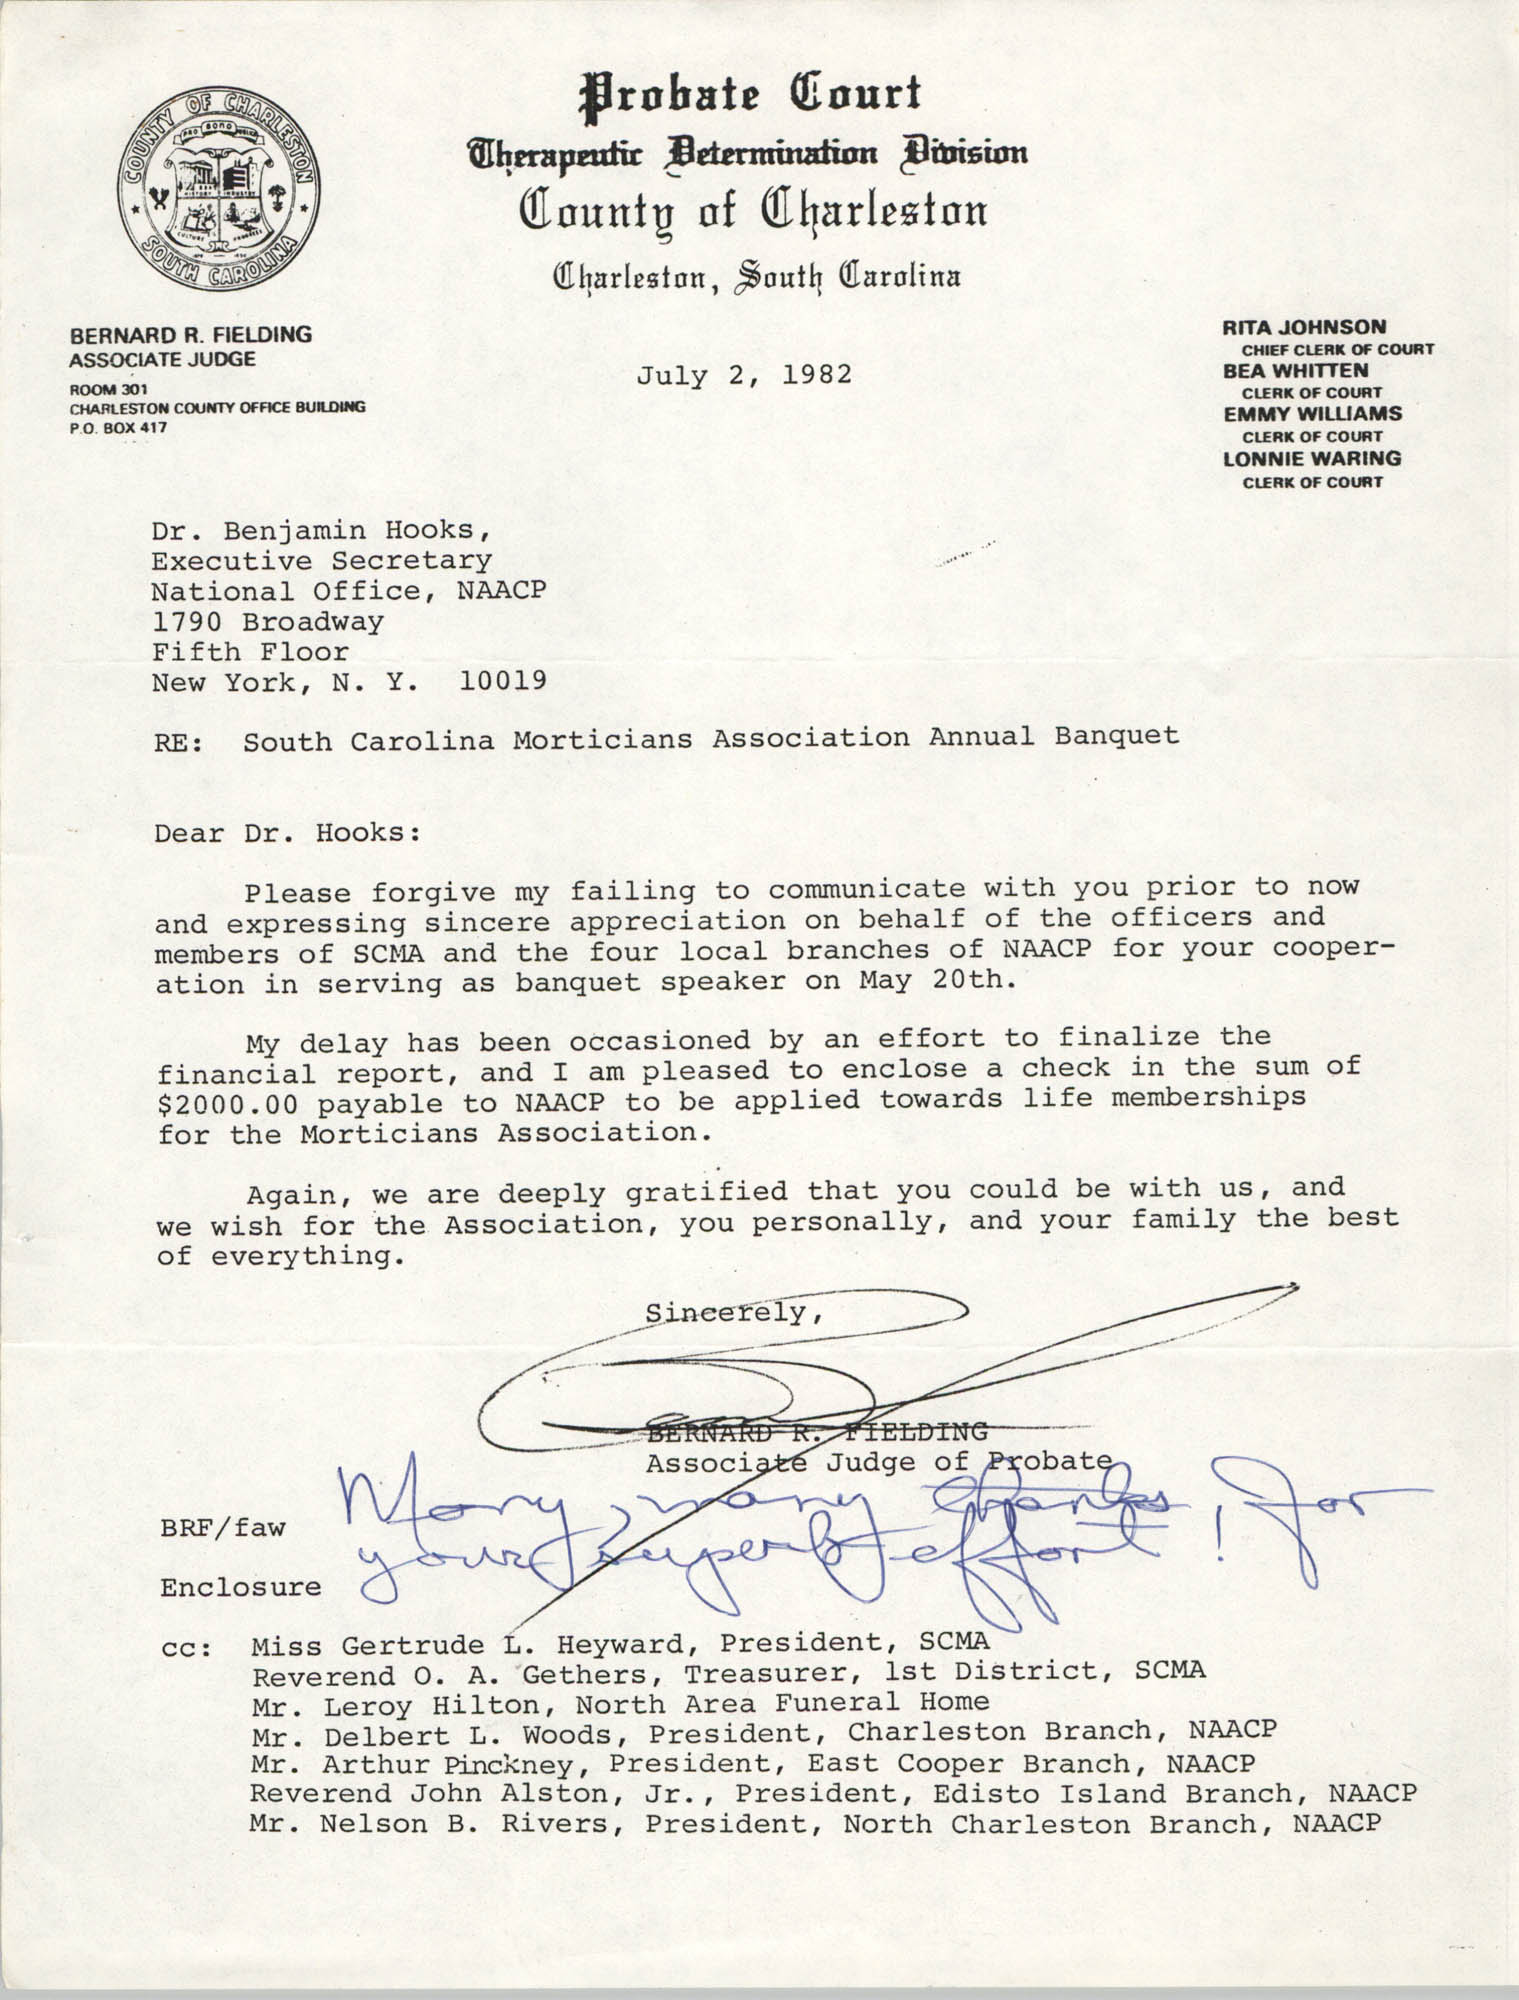 Letter from Bernard R. Fielding to Benjamin Hooks, July 2, 1982